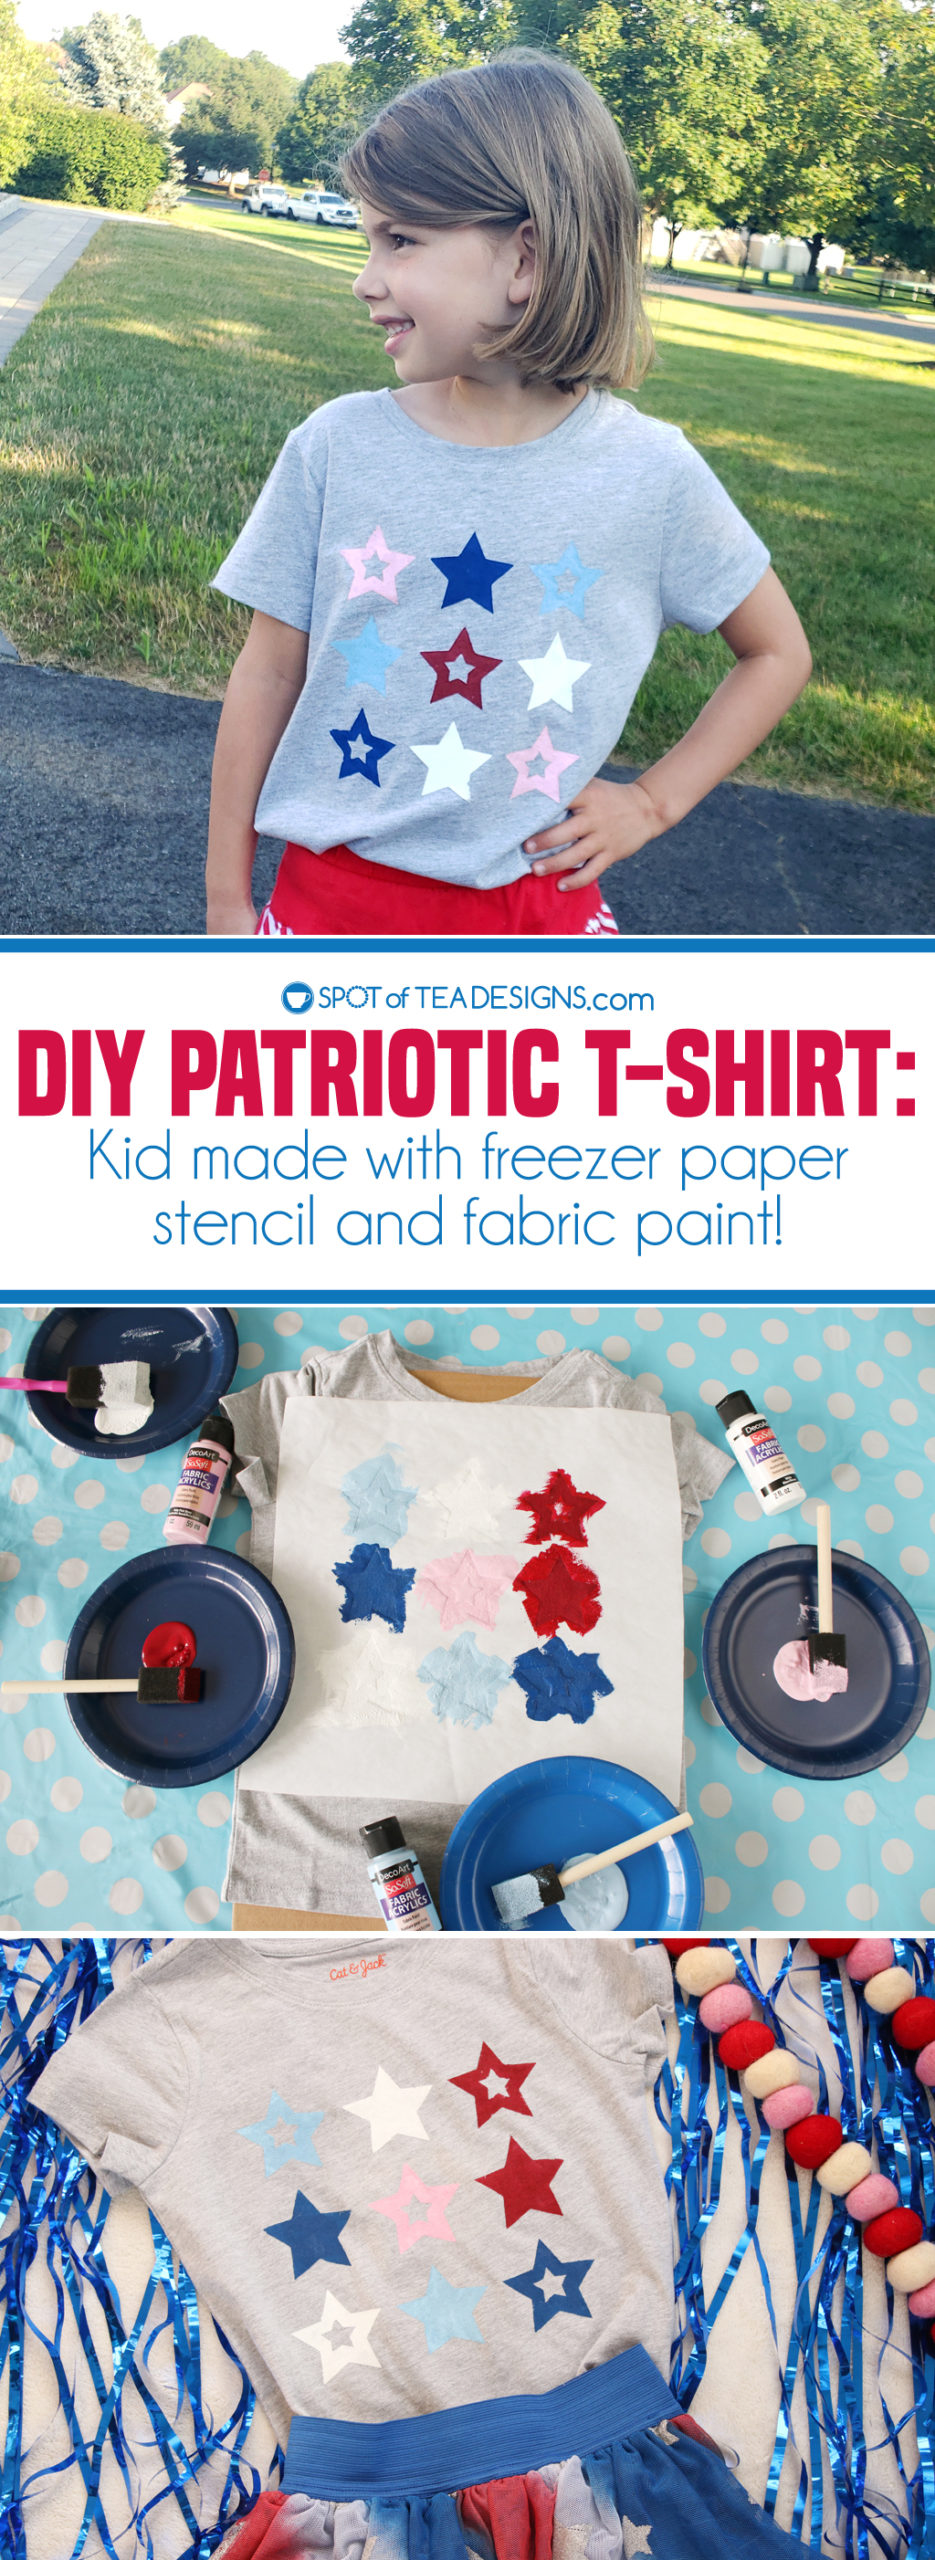 DIY Patriotic T-shirt made using freezer paper stencil and fabric paint | spotofteadesigns.com